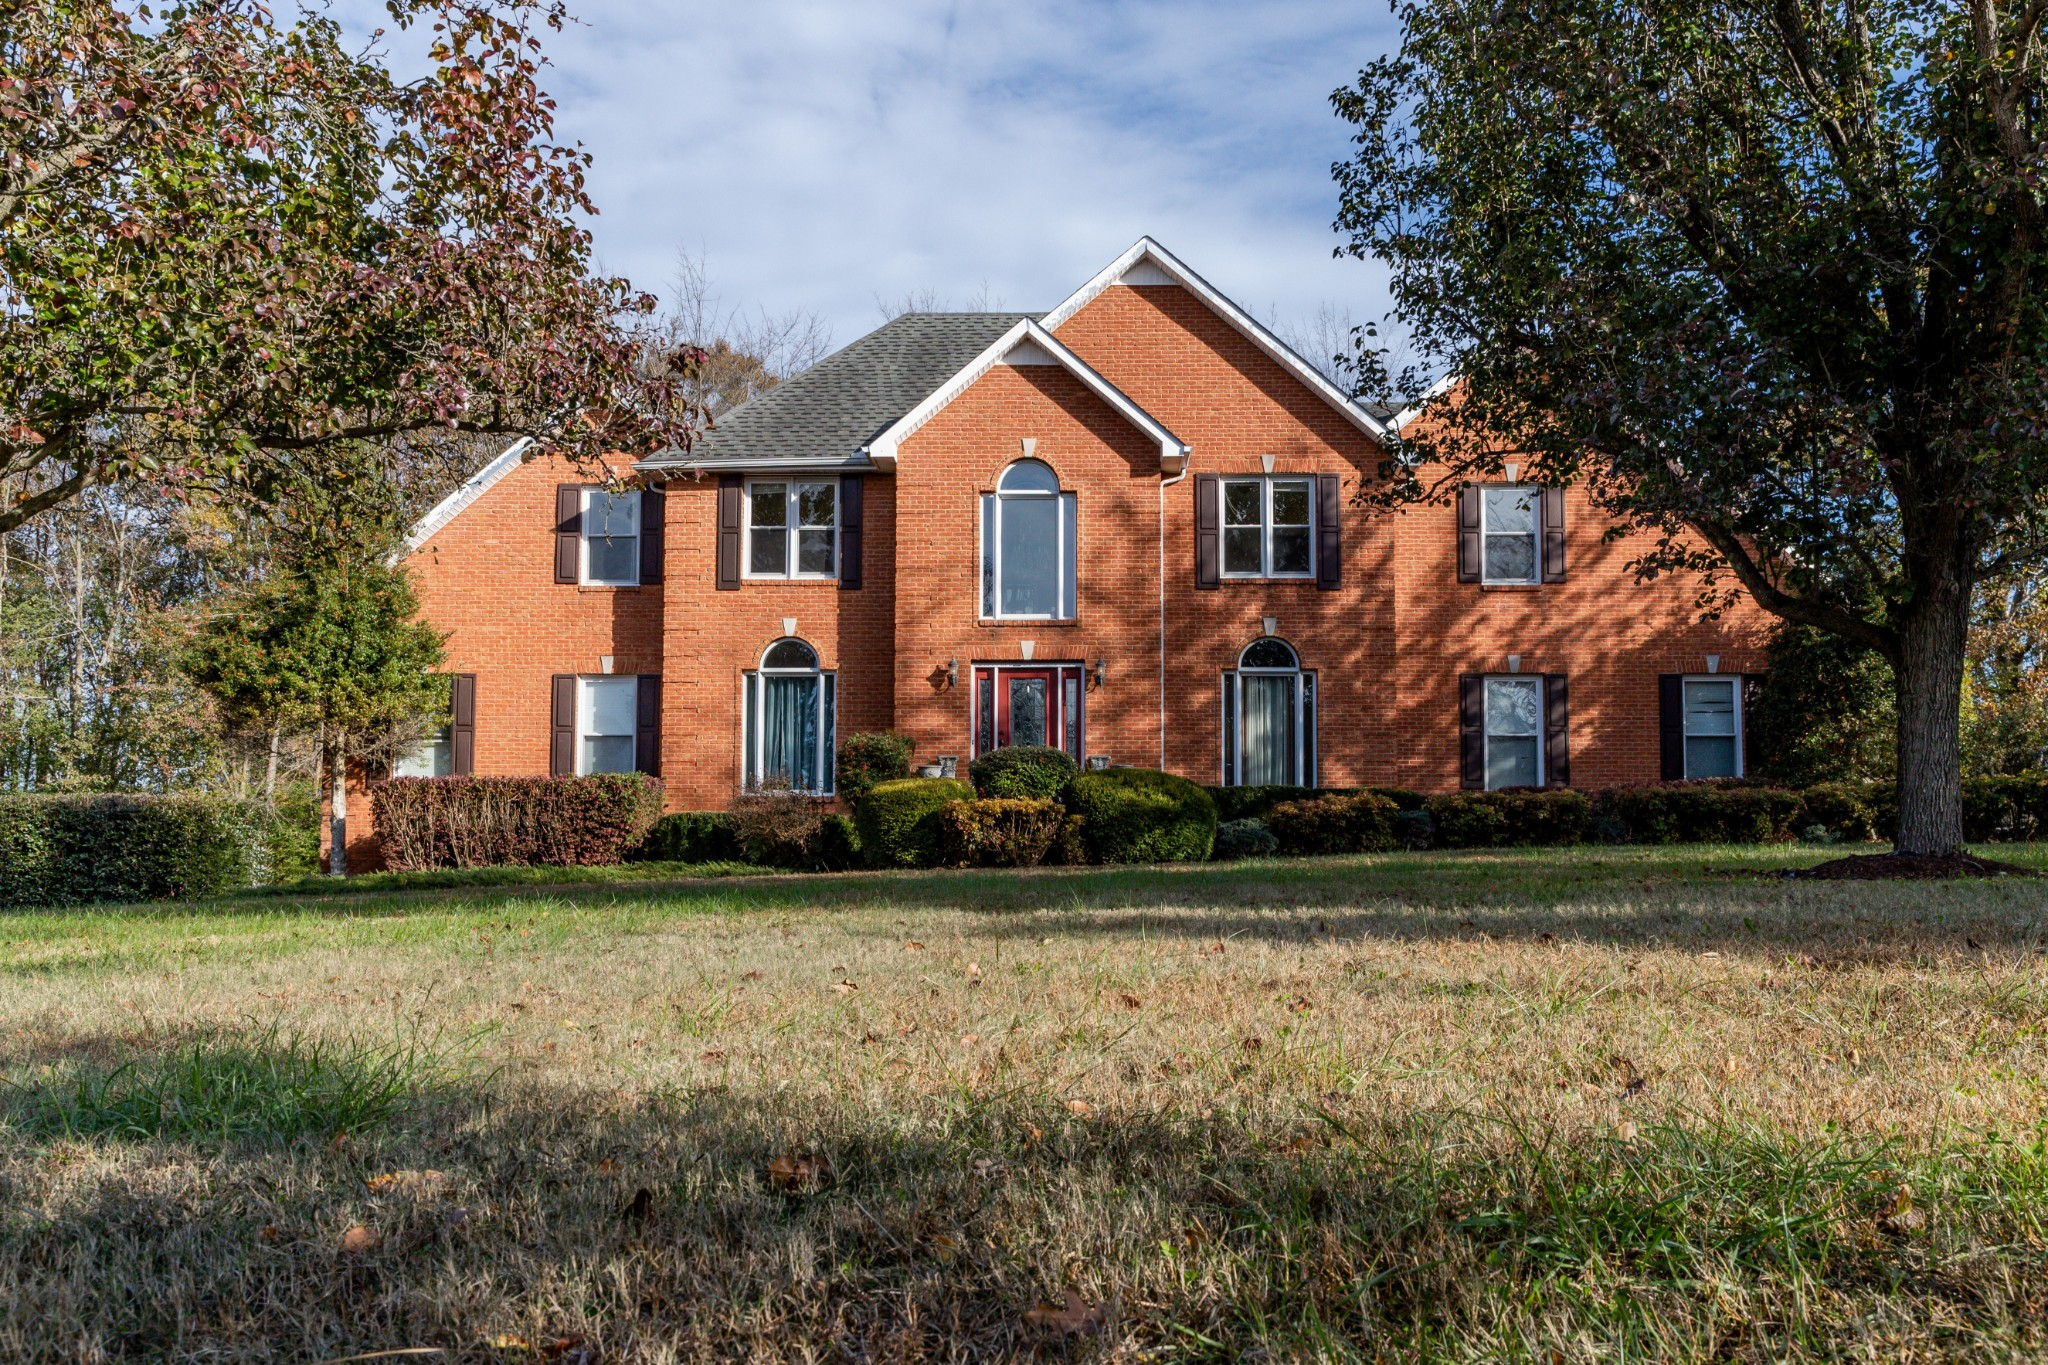 75 CATHERINES CT, Winchester, TN 37398 - Winchester, TN real estate listing